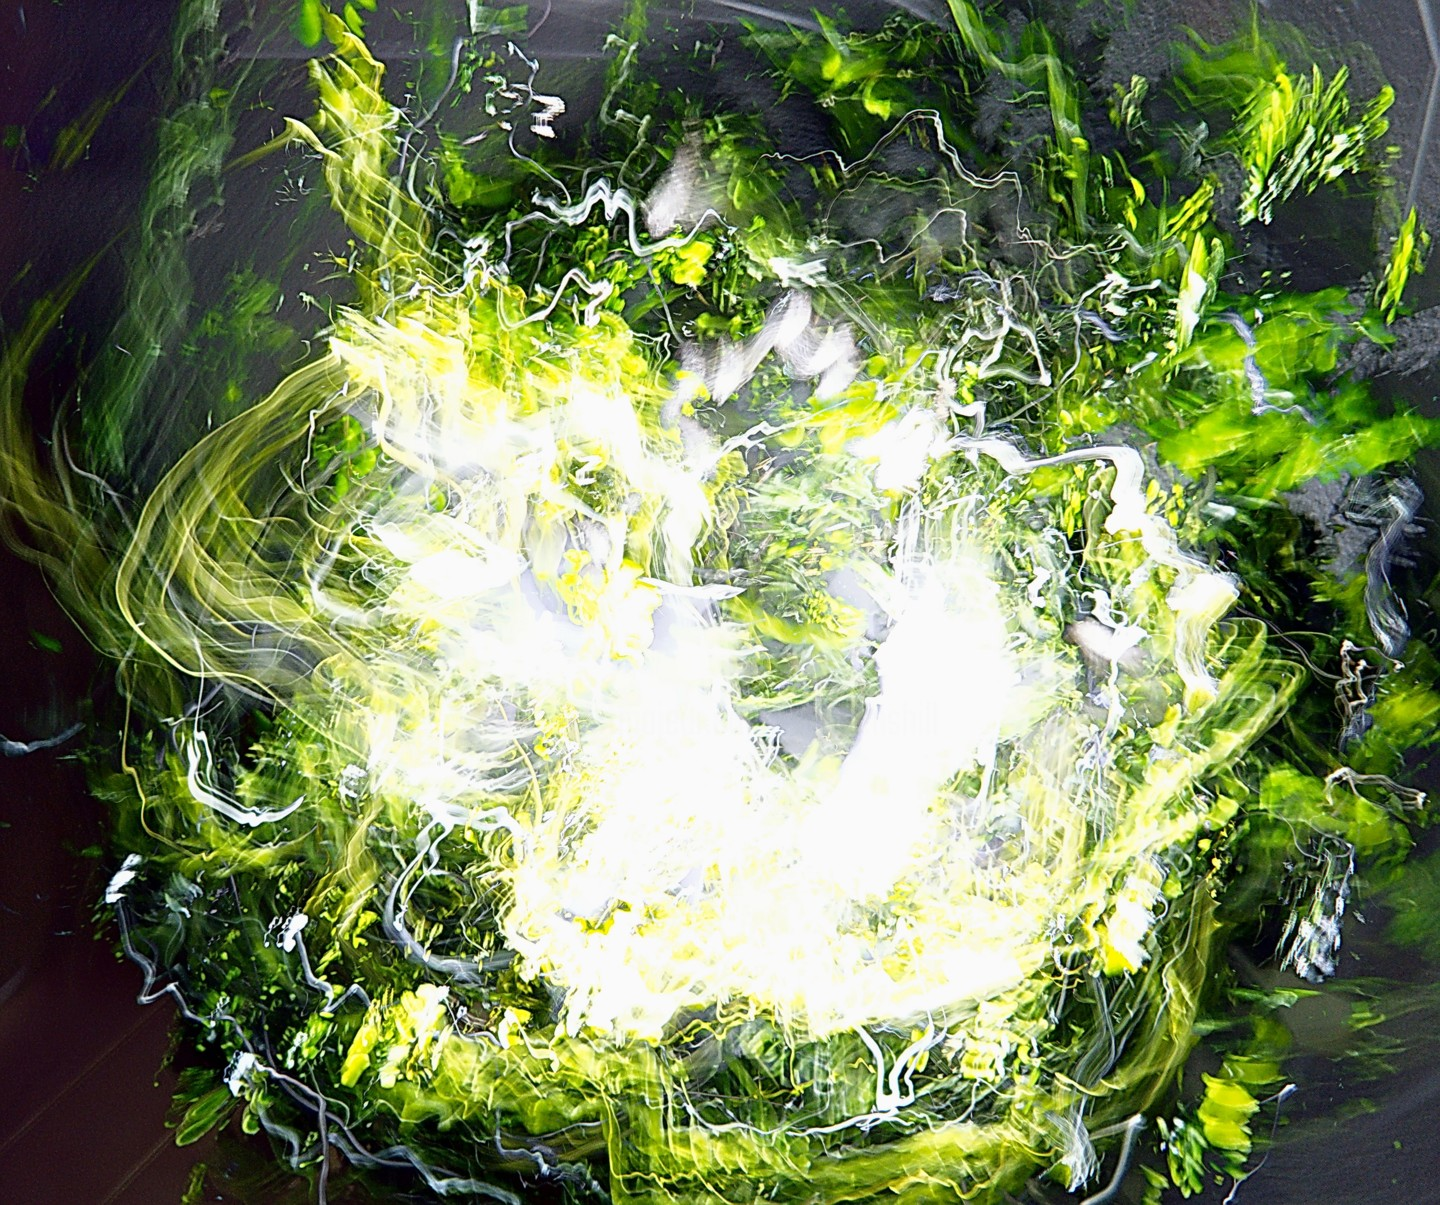 Steevens Hill - Chlorophyll Explosion